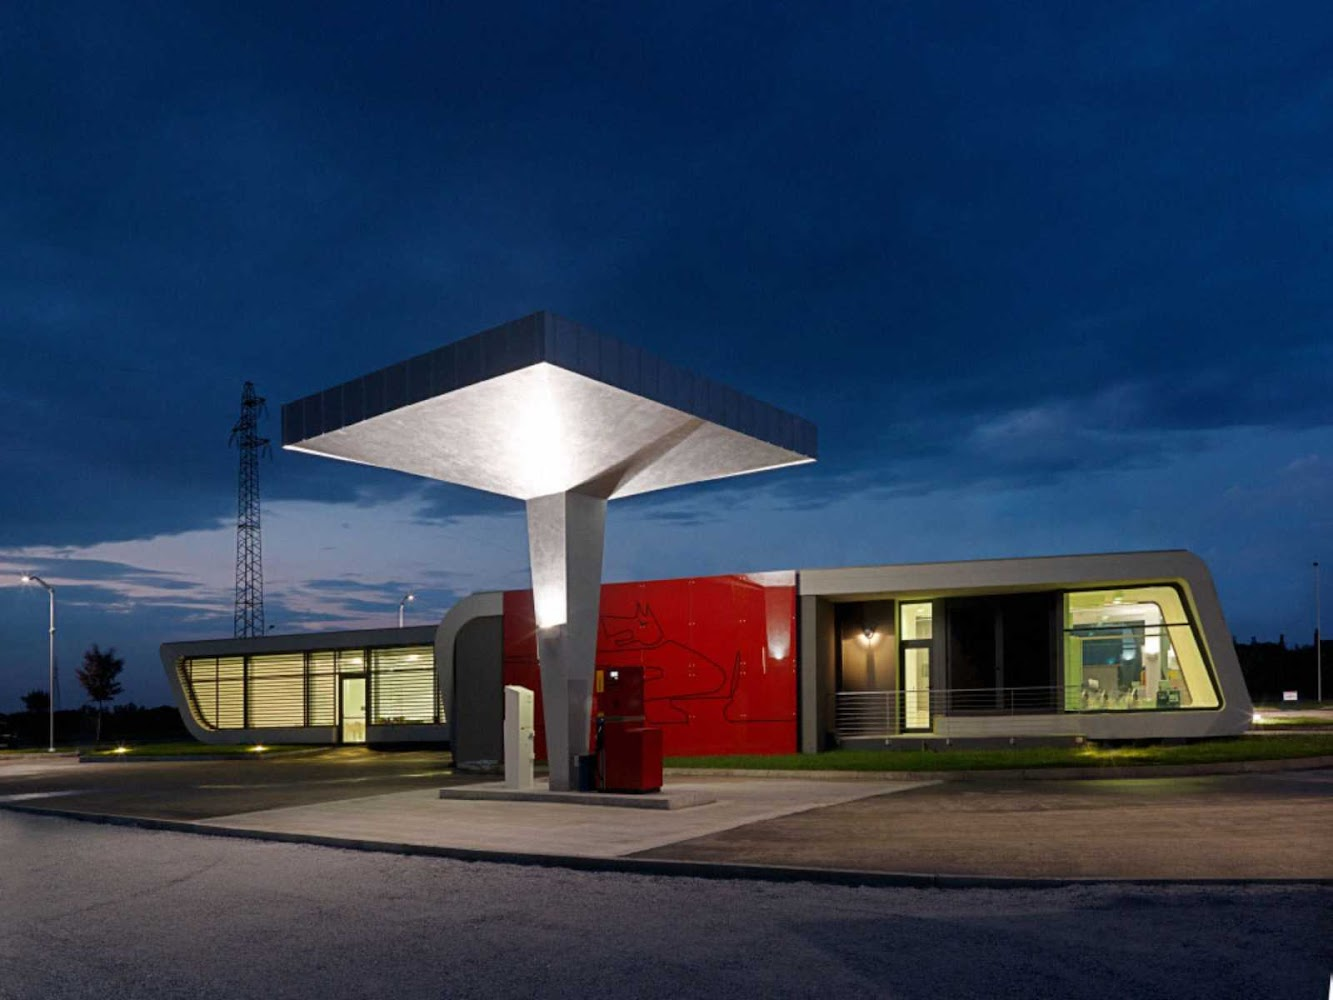 Cuneo Cn, Italia: Gazoline Station by Damilano Studio Architects